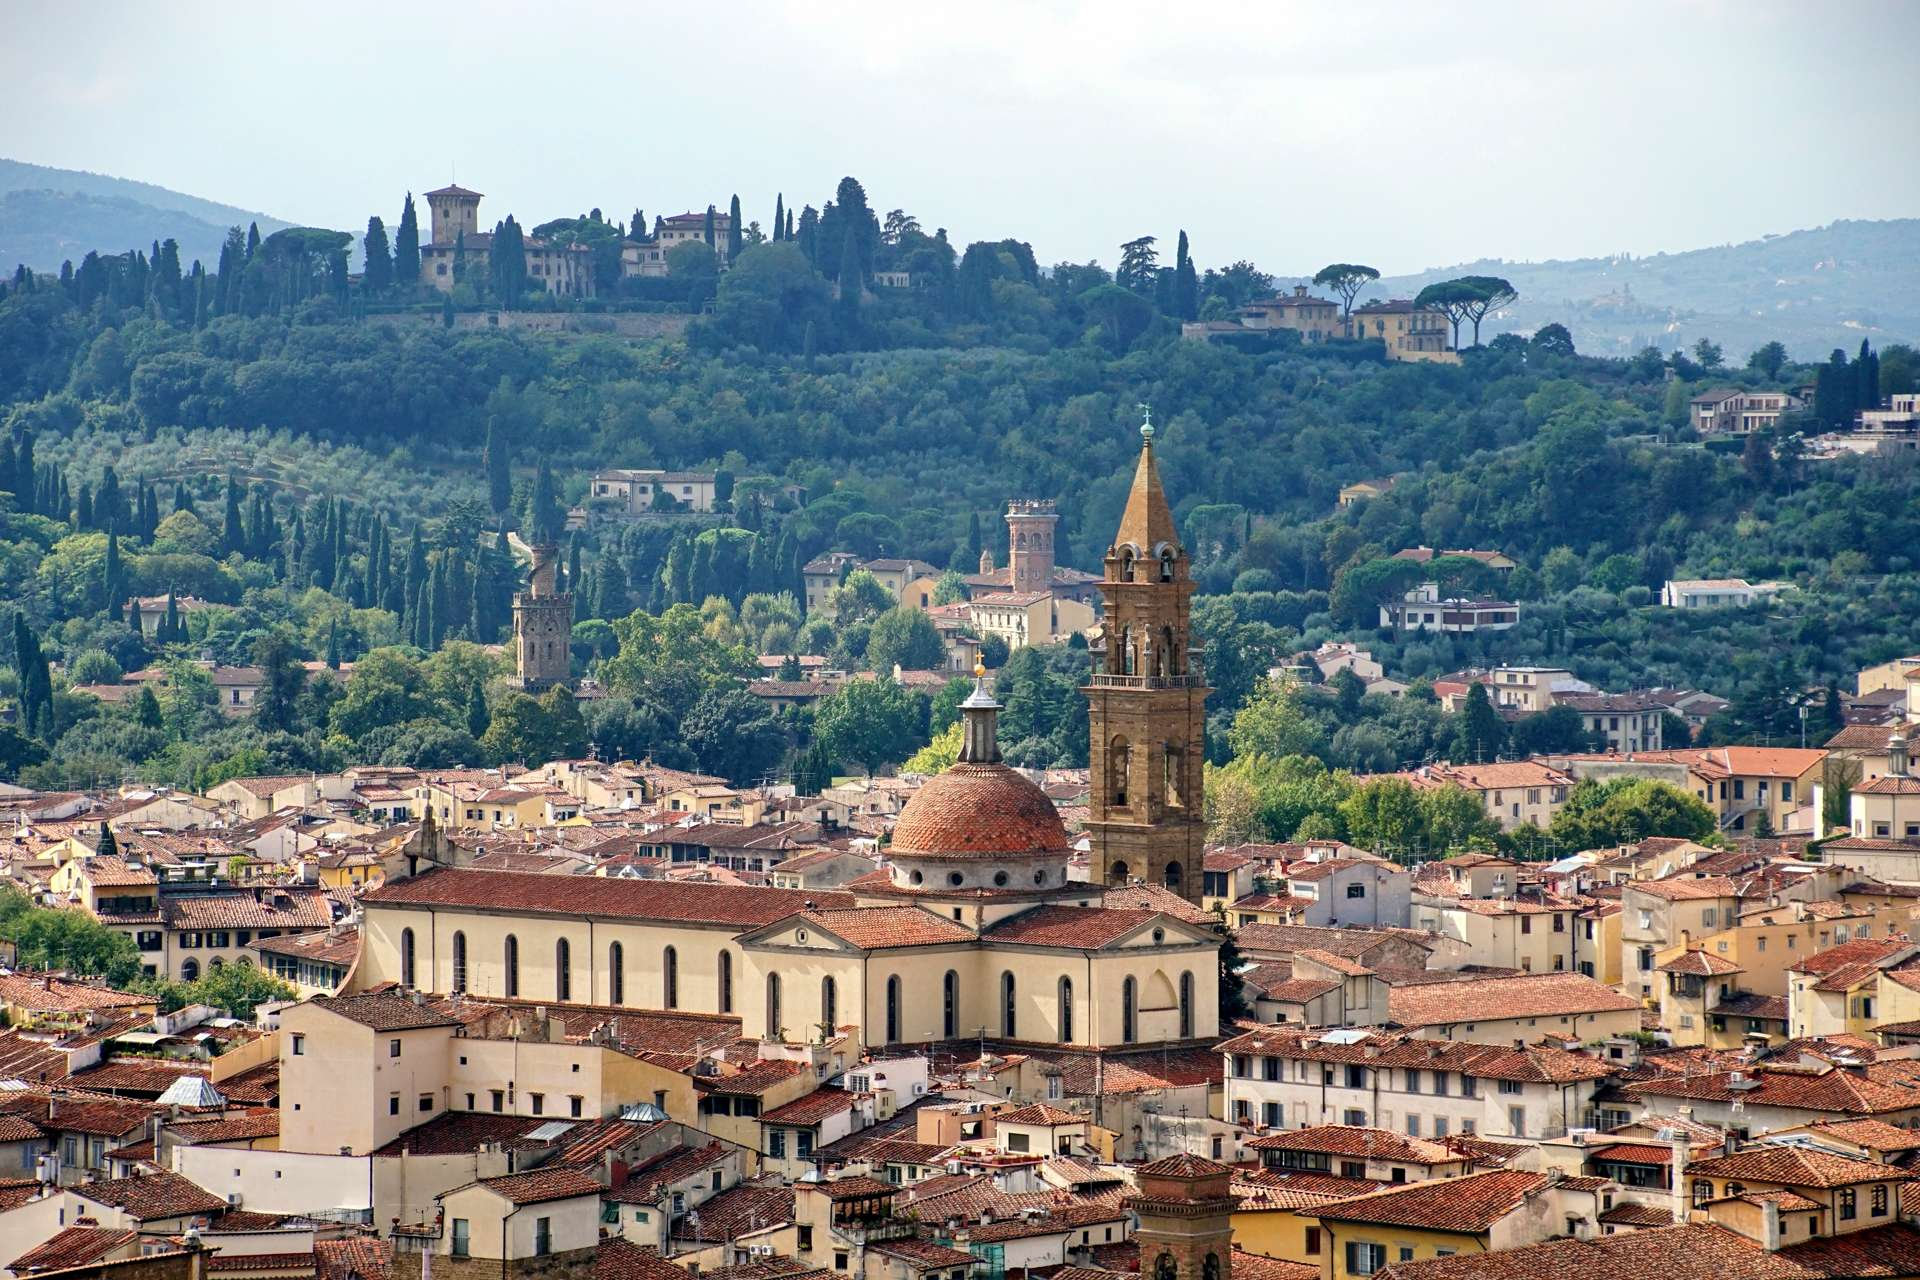 Visiting the Churches of Florence